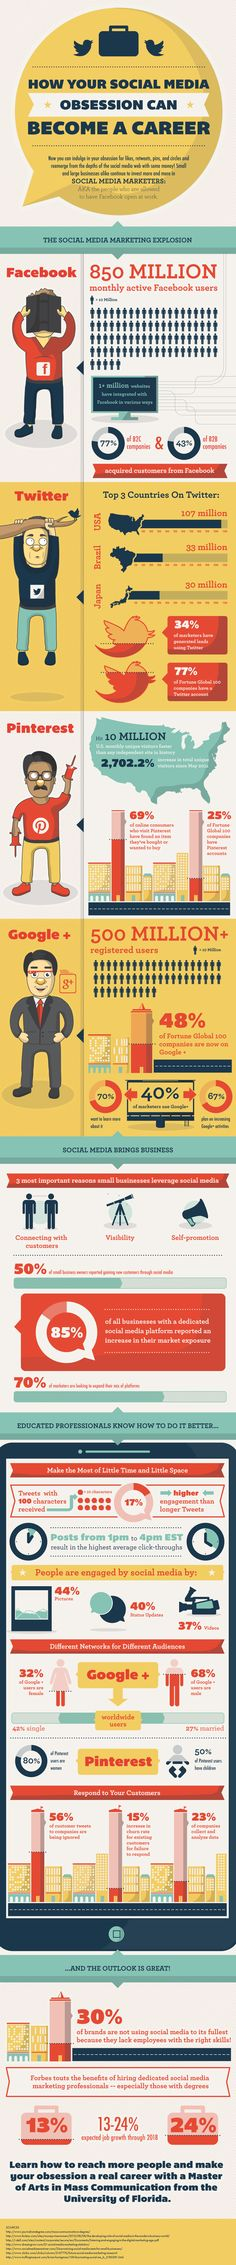 Why Your Social Media Obsession is Good for Your Career [infographic]